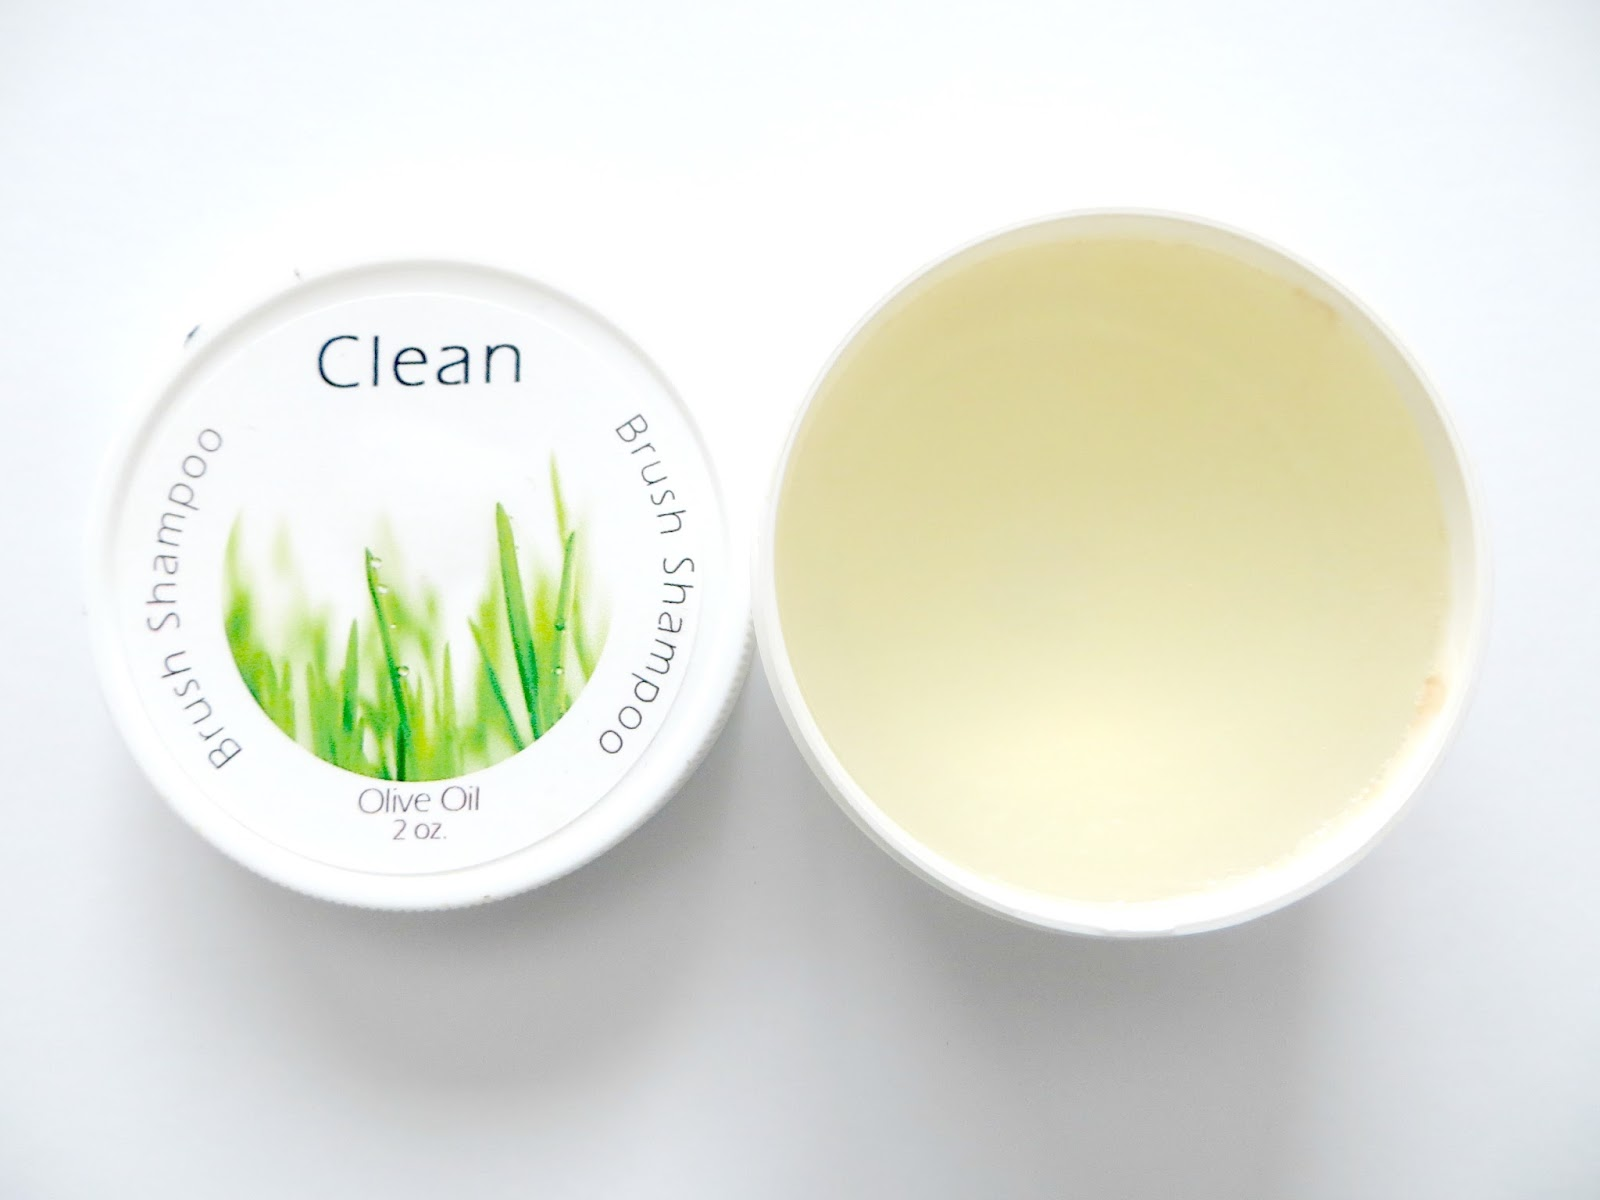 blender cleanser solid how to use